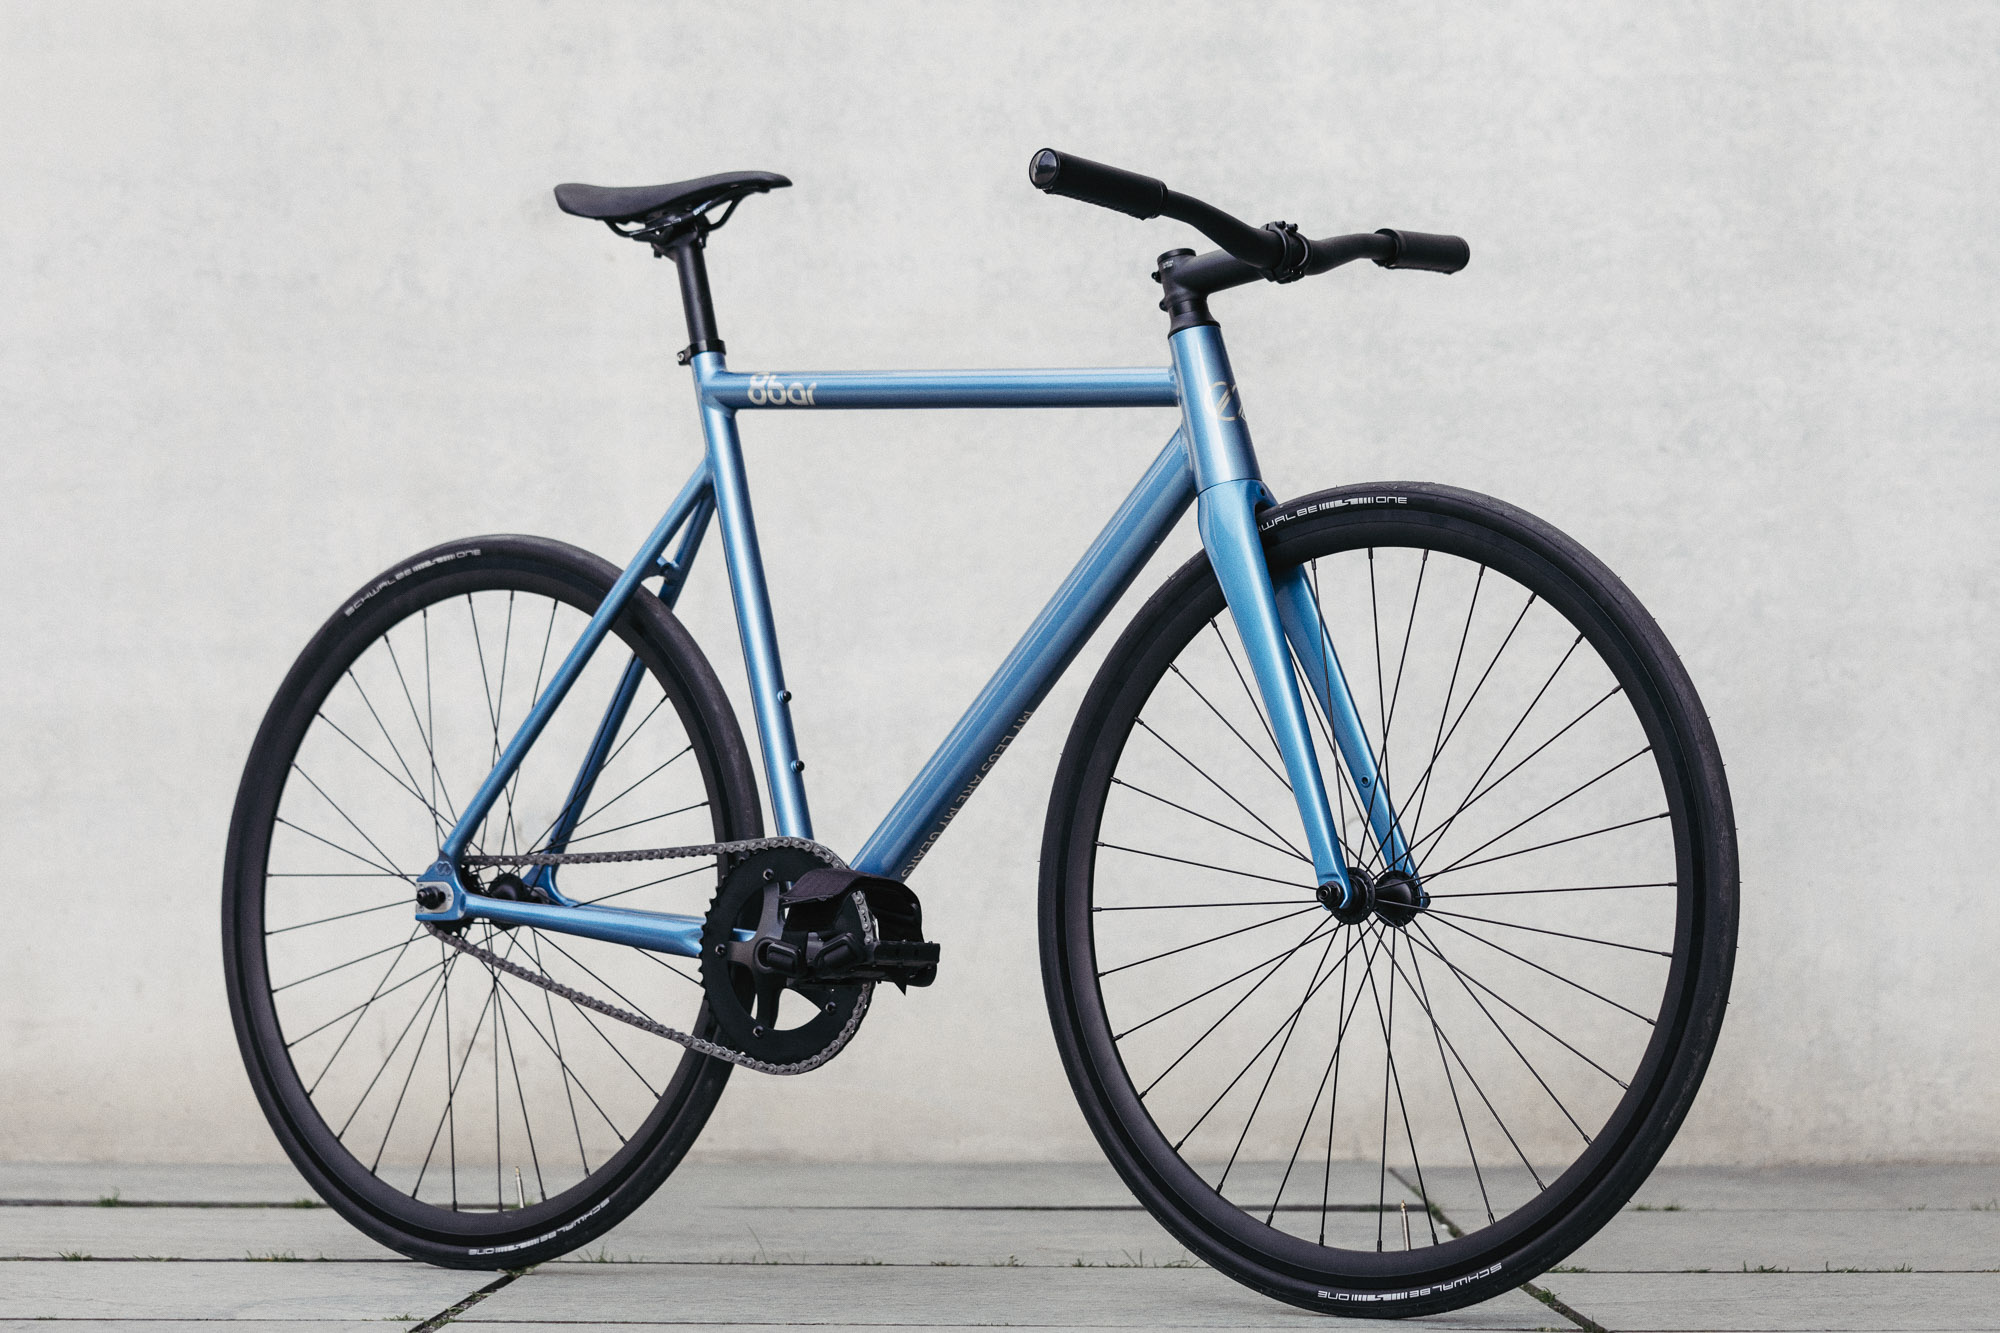 8bar-complete-bike-krzberg-v7-blue-fixie-fixed-gear-lr-24